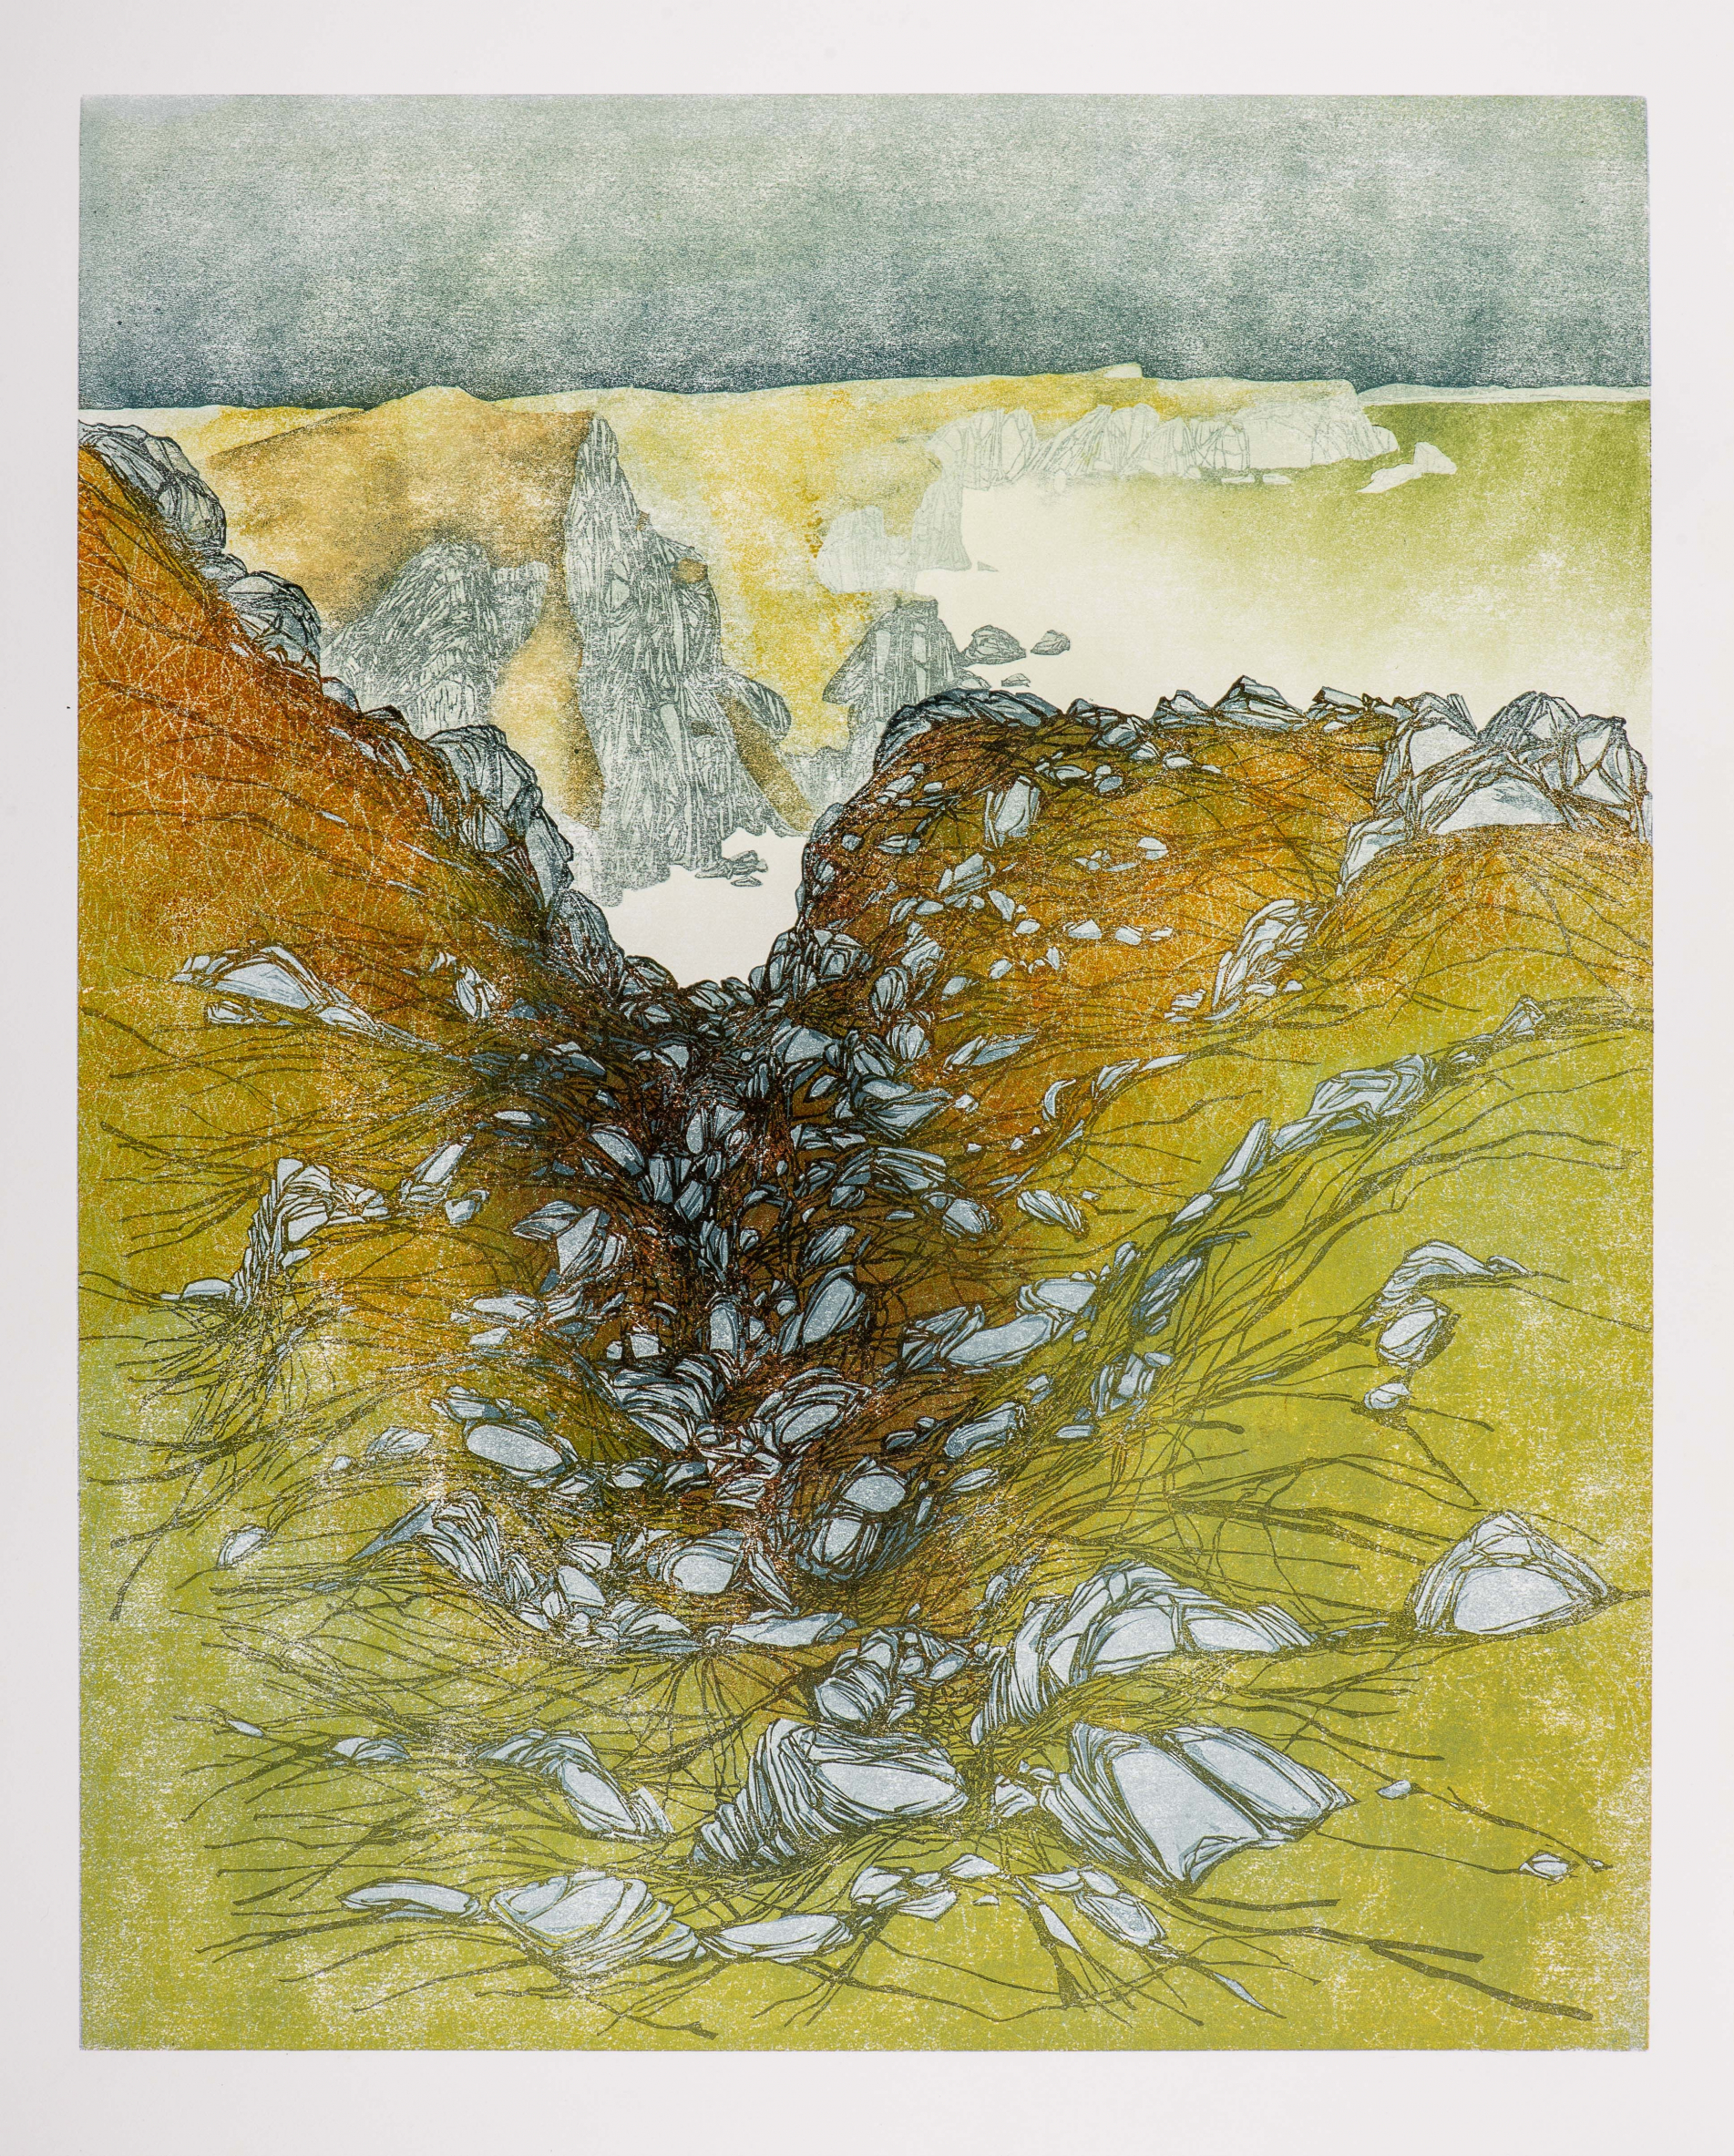 Laura Boswell. St Abbs, looking north (Linocut - 595 x 480 mm)